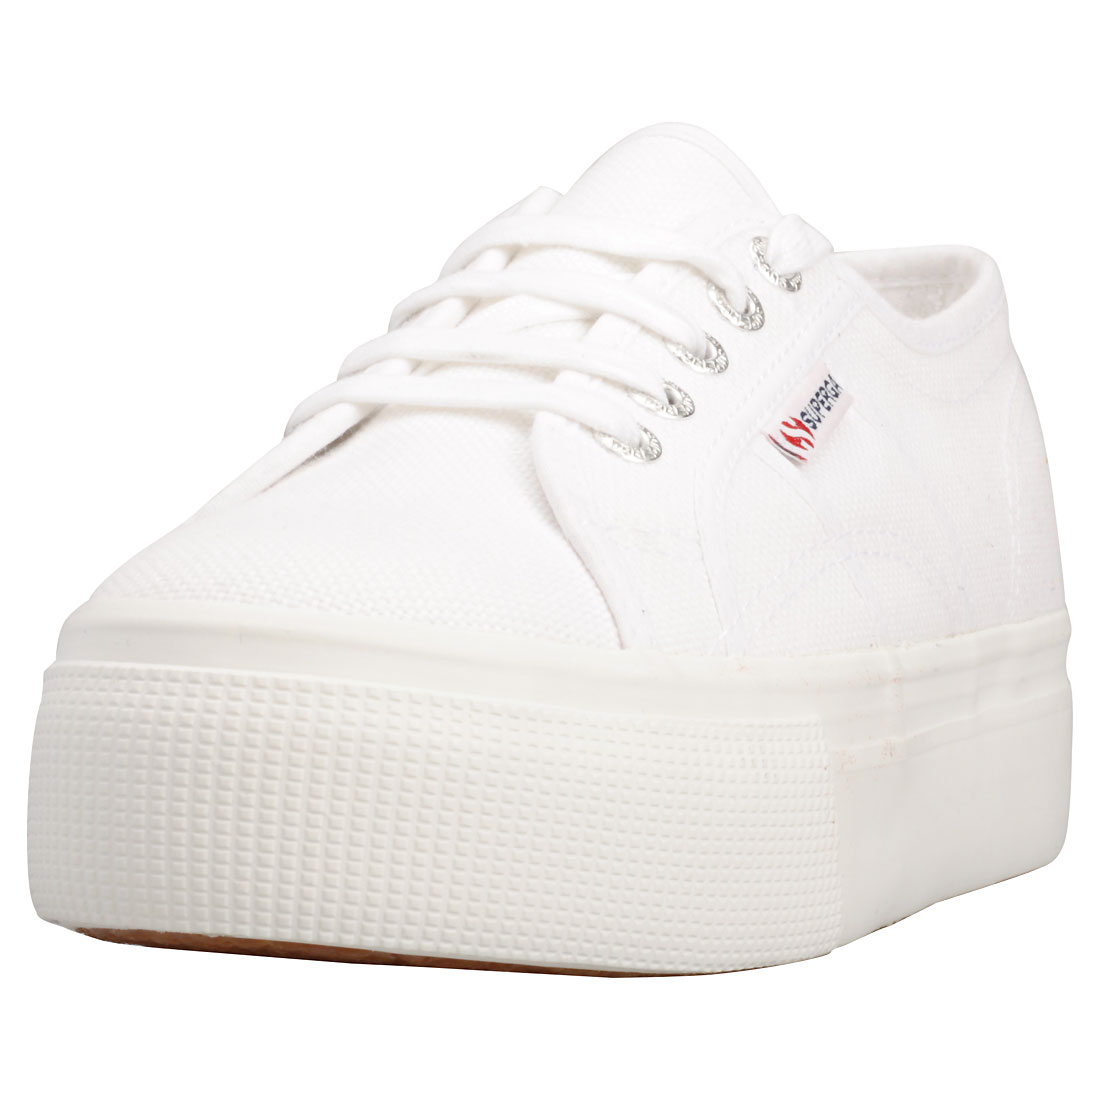 Superga X Patternity 2790 Fancotw Damen White Black Leinwand Sneaker - 5 UK